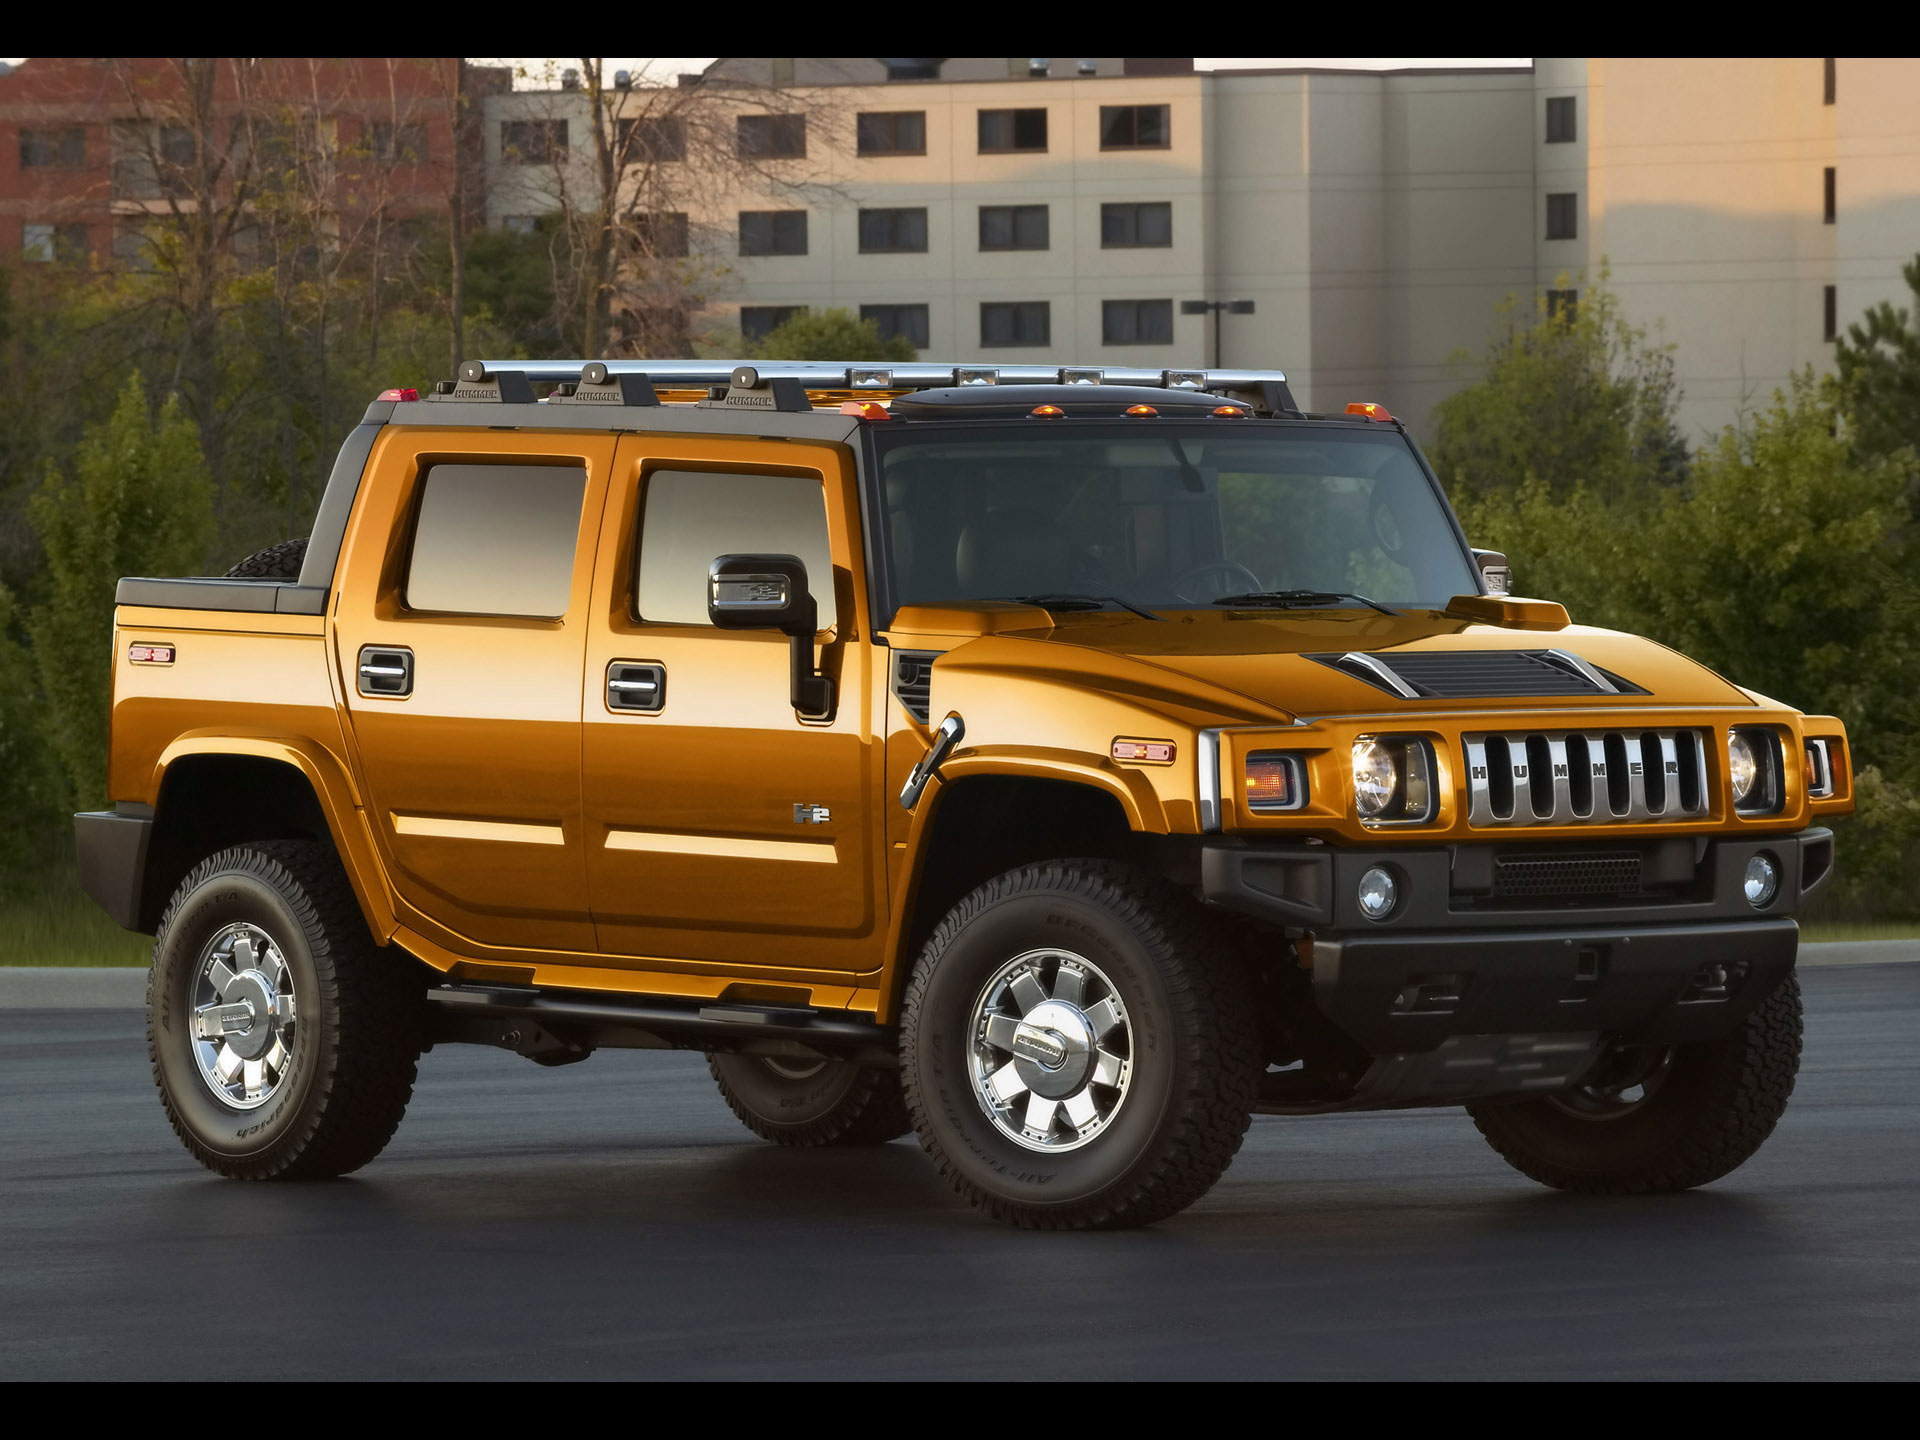 Image Wallpapers Hummer H2 Jpg The Car Wallpaper Mania Wiki